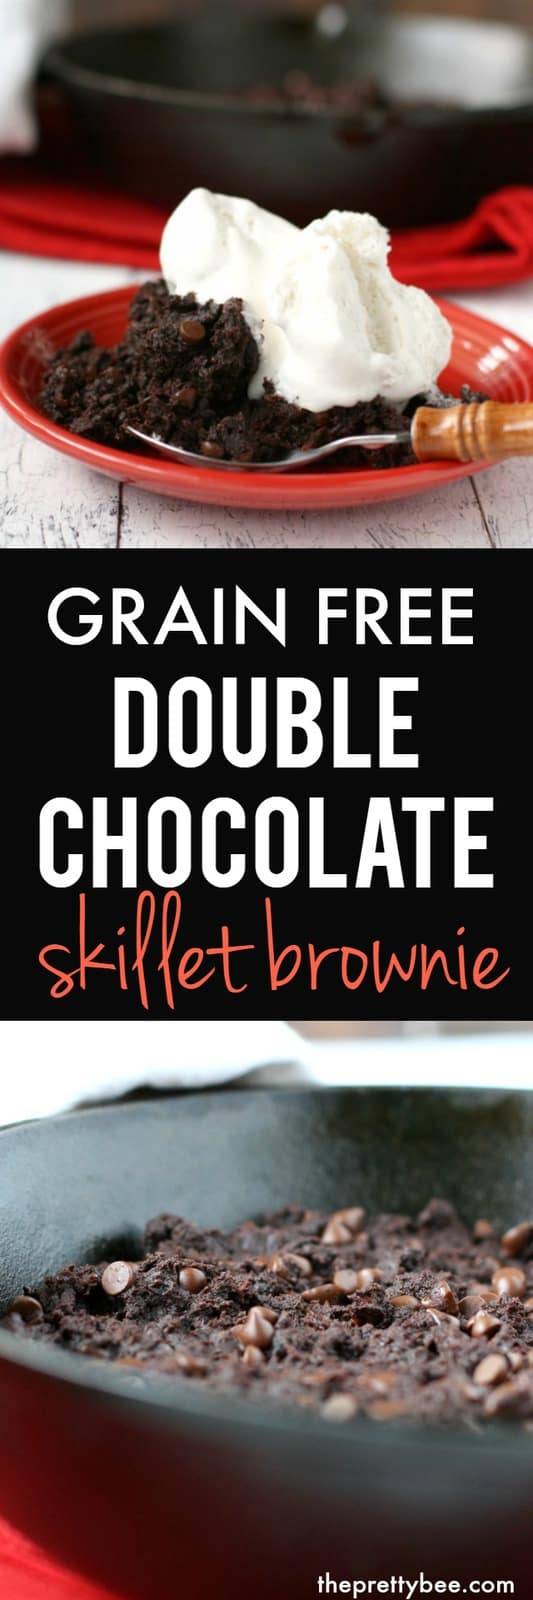 This grain free double chocolate skillet brownie is a delicious treat that's healthier, too!